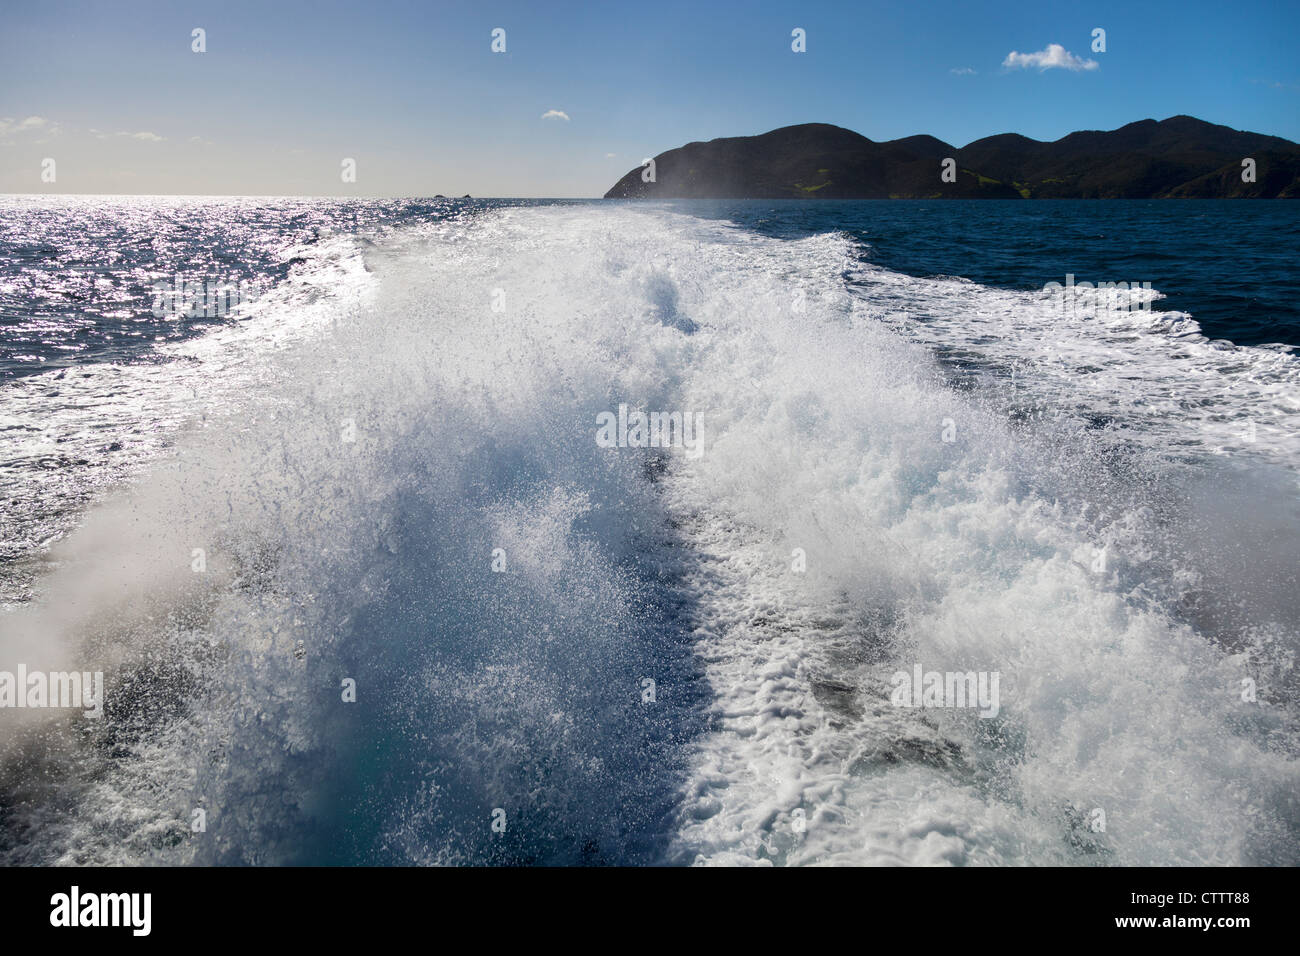 Cruising the Bay of Islands, New Zealand - wake behind our boat - Stock Image